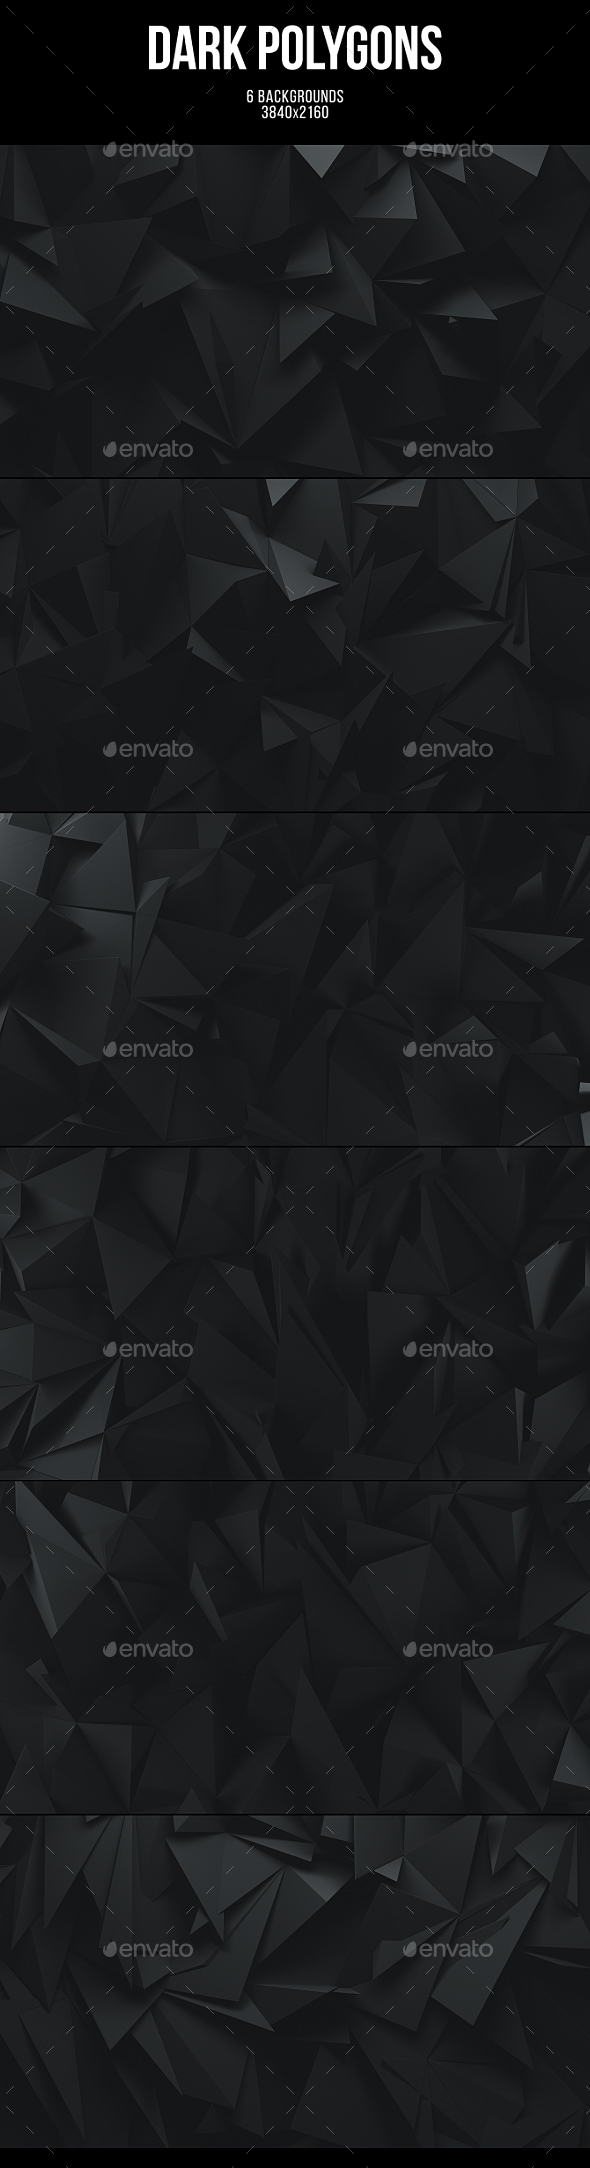 Dark Polygons Backgrounds - Abstract Backgrounds